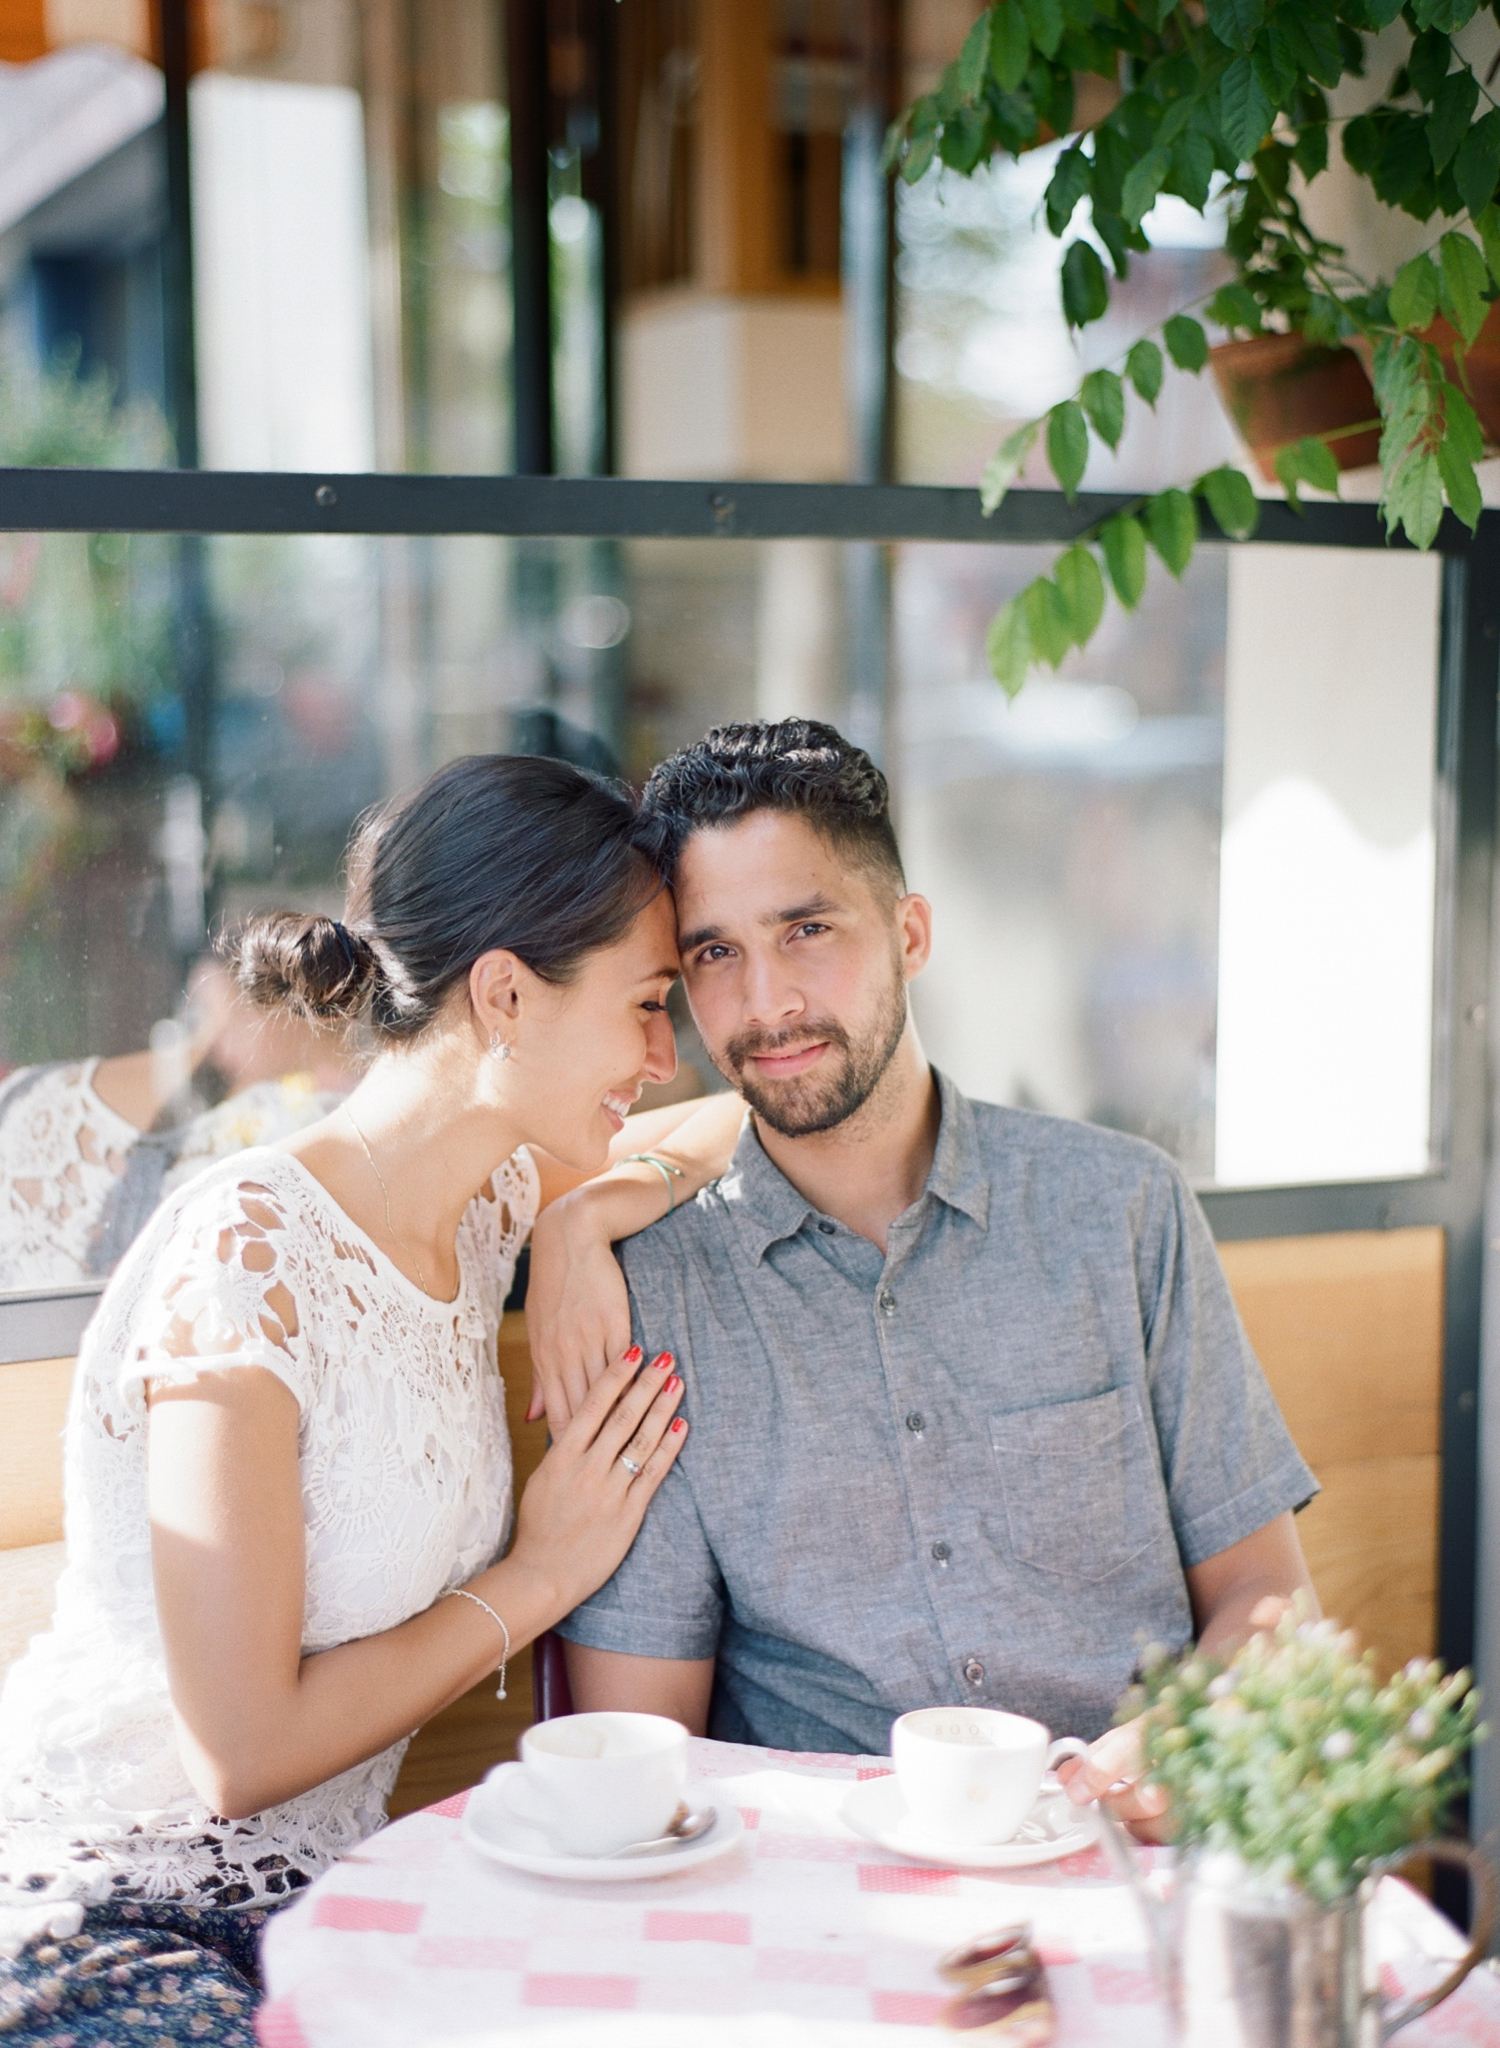 Coffee place engagement photos